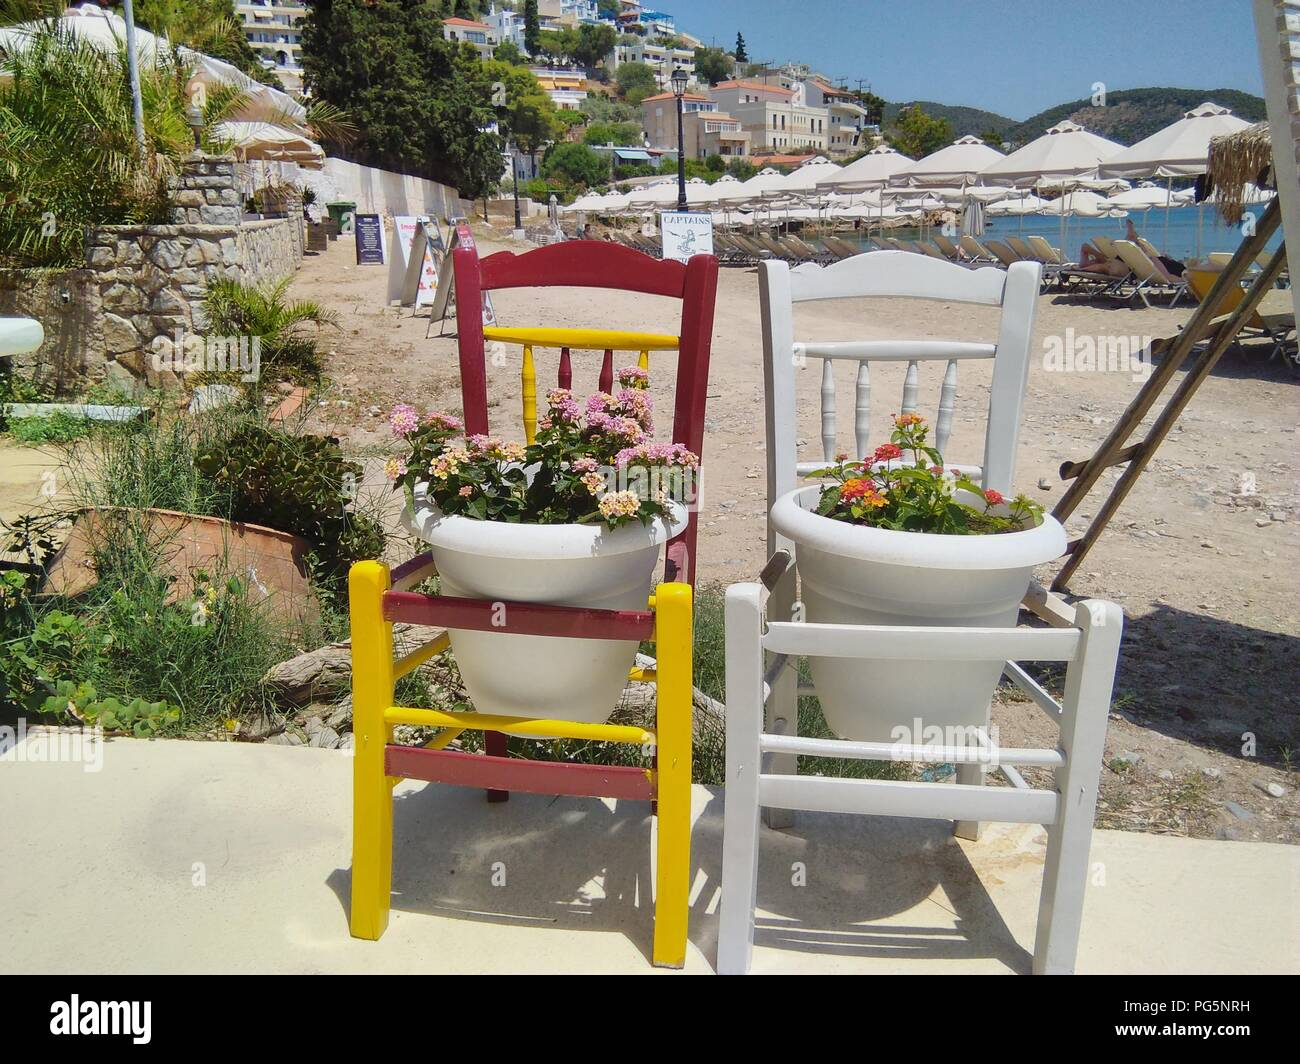 Greece, the atmospheric island of Poros.  Two old chairs painted and recycled as plant pot holders in a quirky way - Stock Image